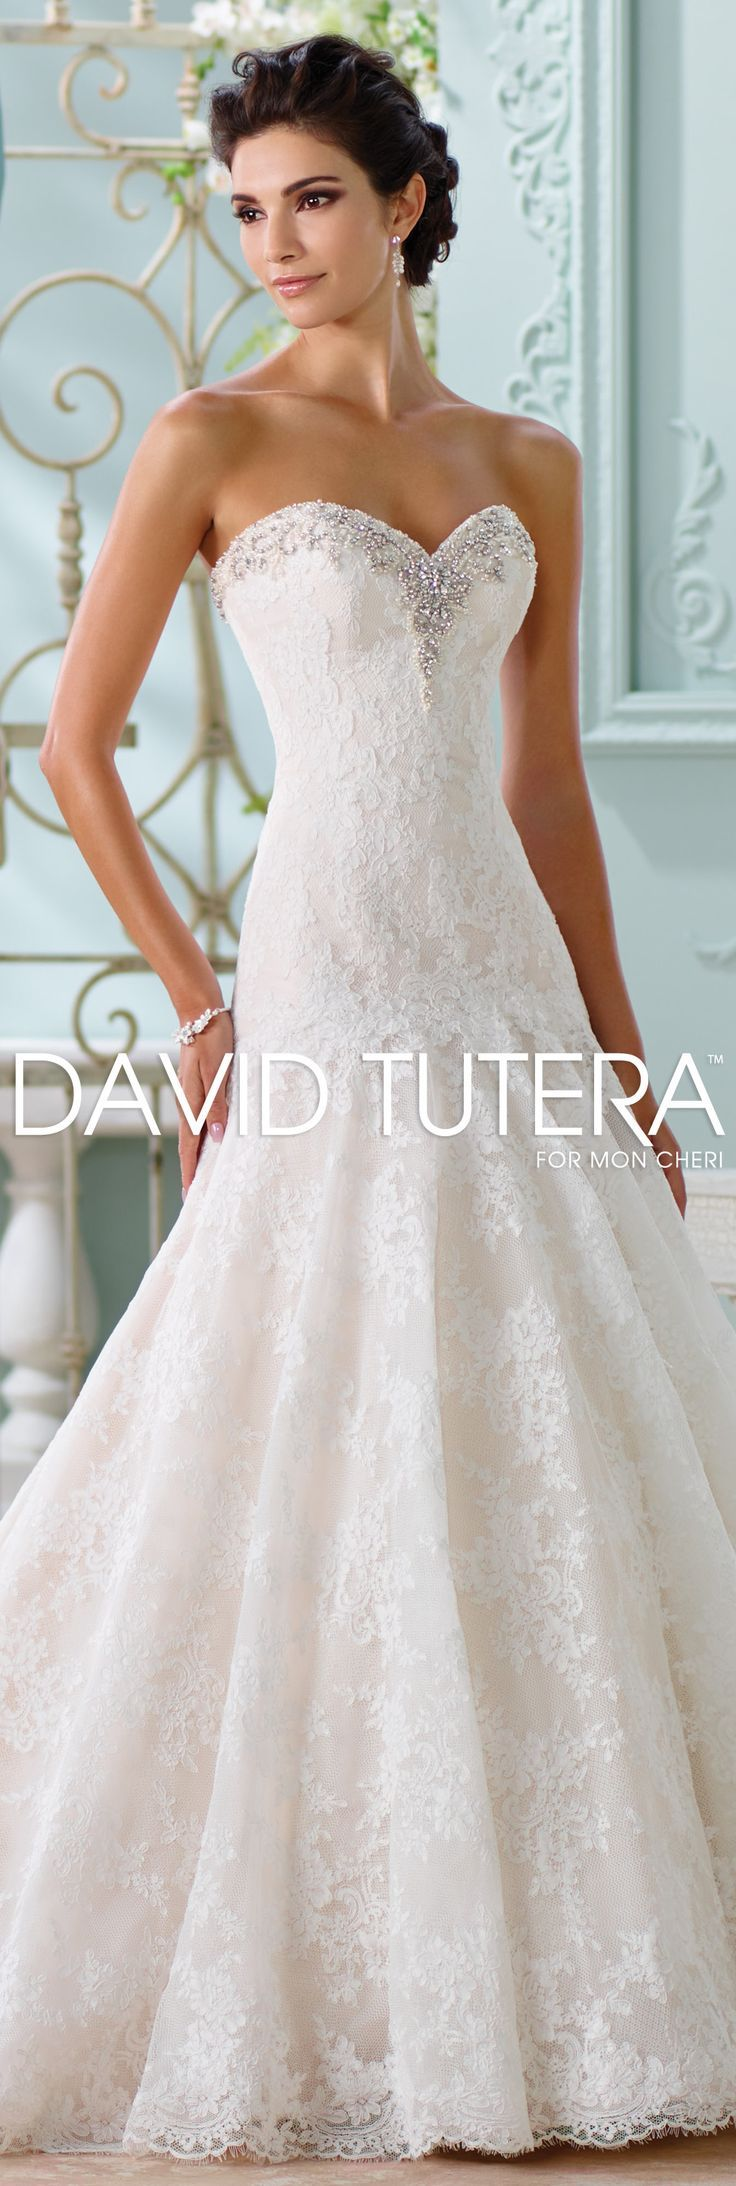 The David Tutera for Mon Cheri Spring 2016 Wedding Gown Collection - Style No. 116205 Chasca #laceweddingdresses  @moncheribridals